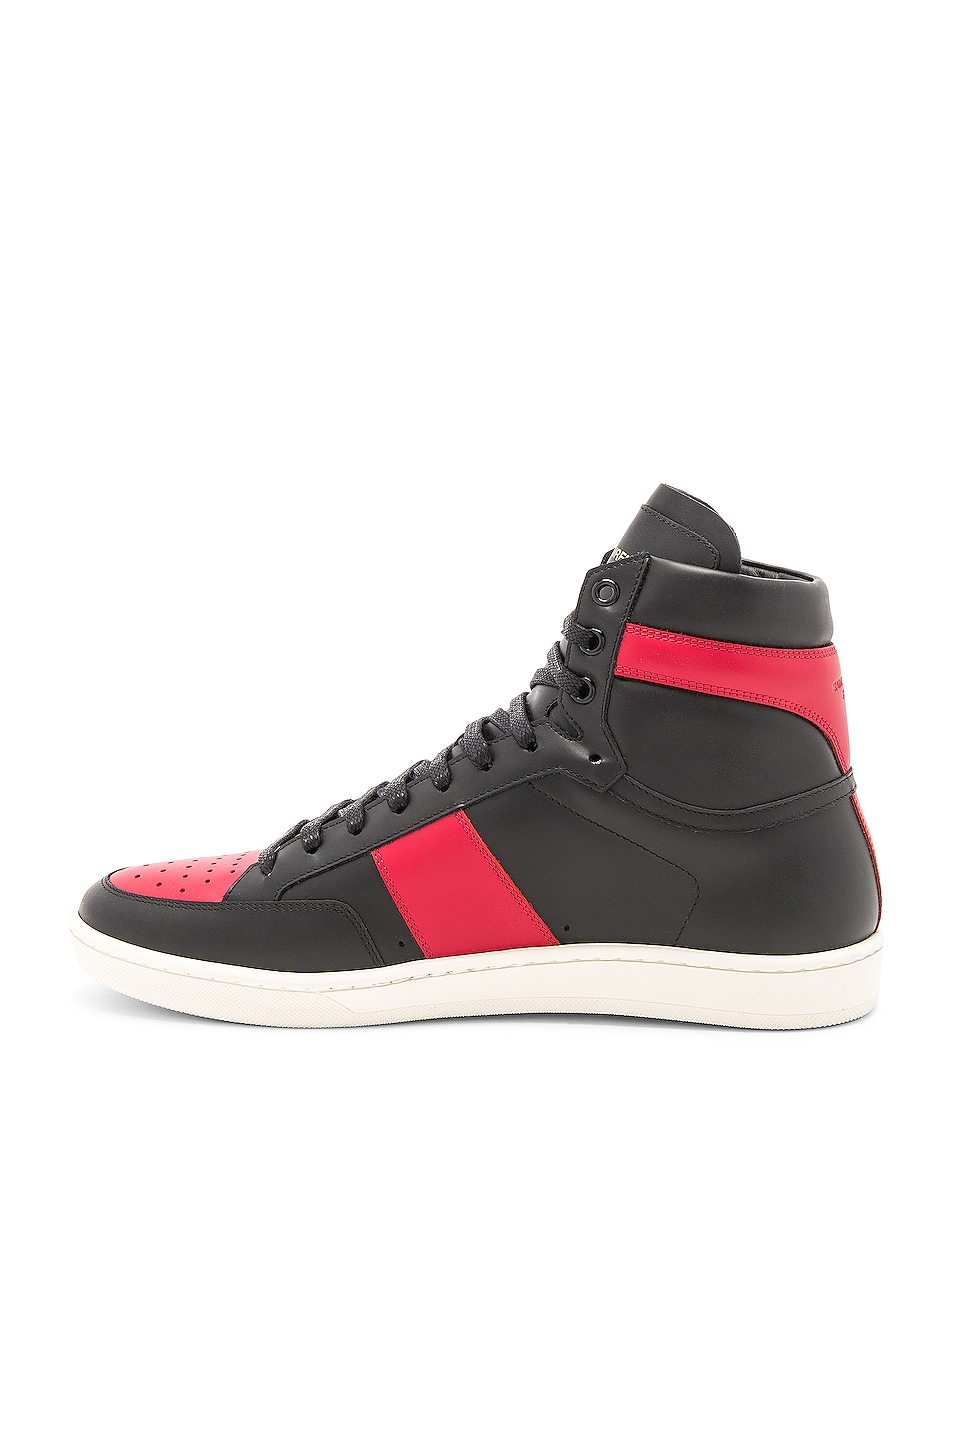 Image 5 of Saint Laurent Signature Court Classic SL/10H Leather High Top Sneakers in Black & Red